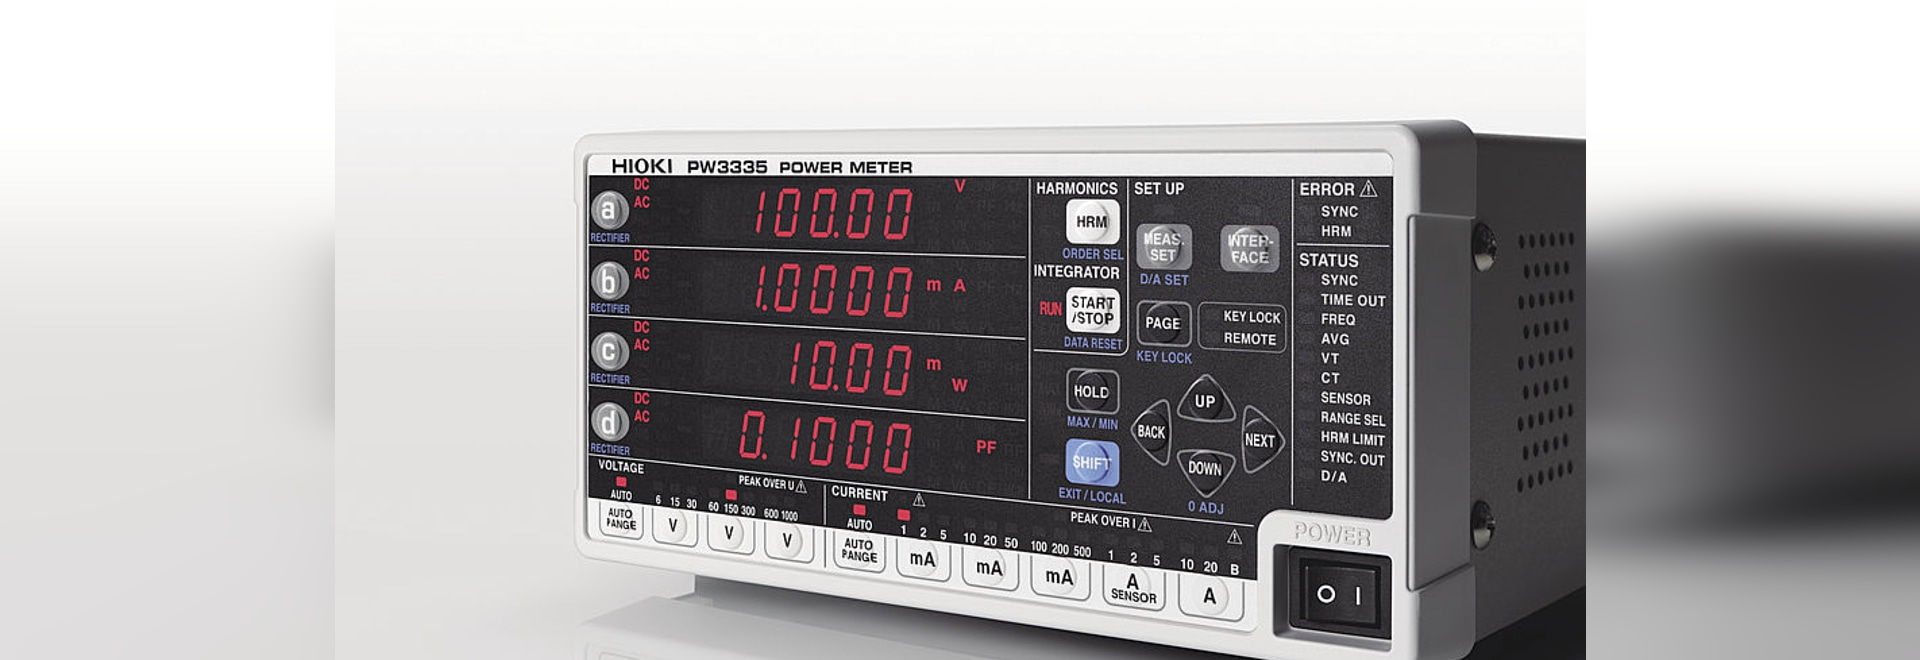 Hioki Launches Power Meter Pw3335 With Compliance To Iec62301 For Audio Standby